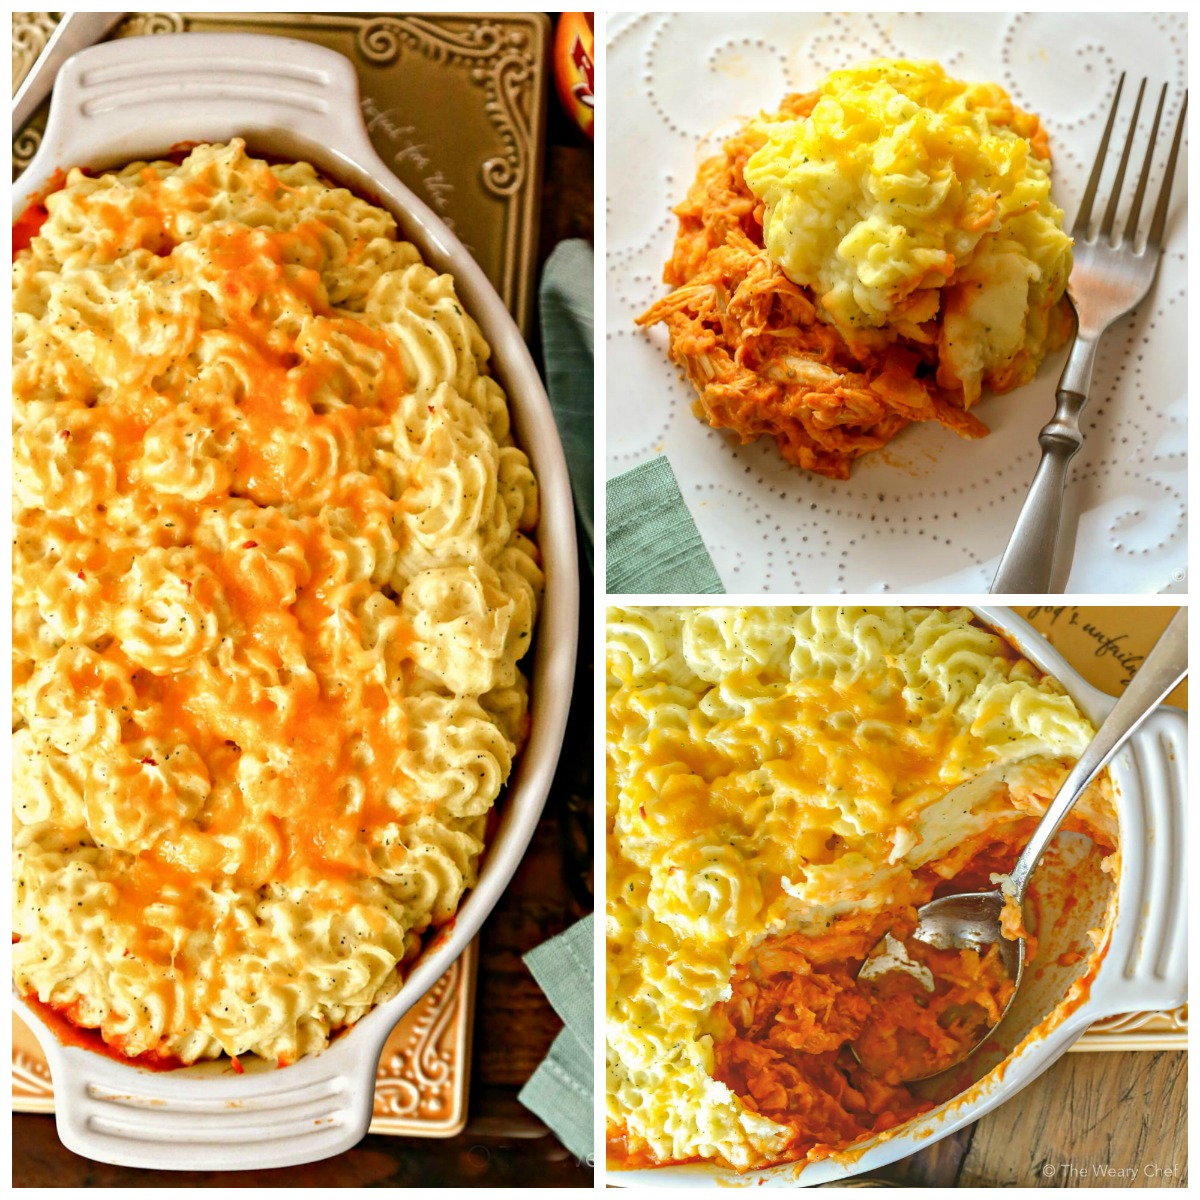 Classic Buffalo Chicken Dip is reinvented into a comforting family dinner—Buffalo Chicken Shepherd's Pie with Ranch Mashed Potatoes!